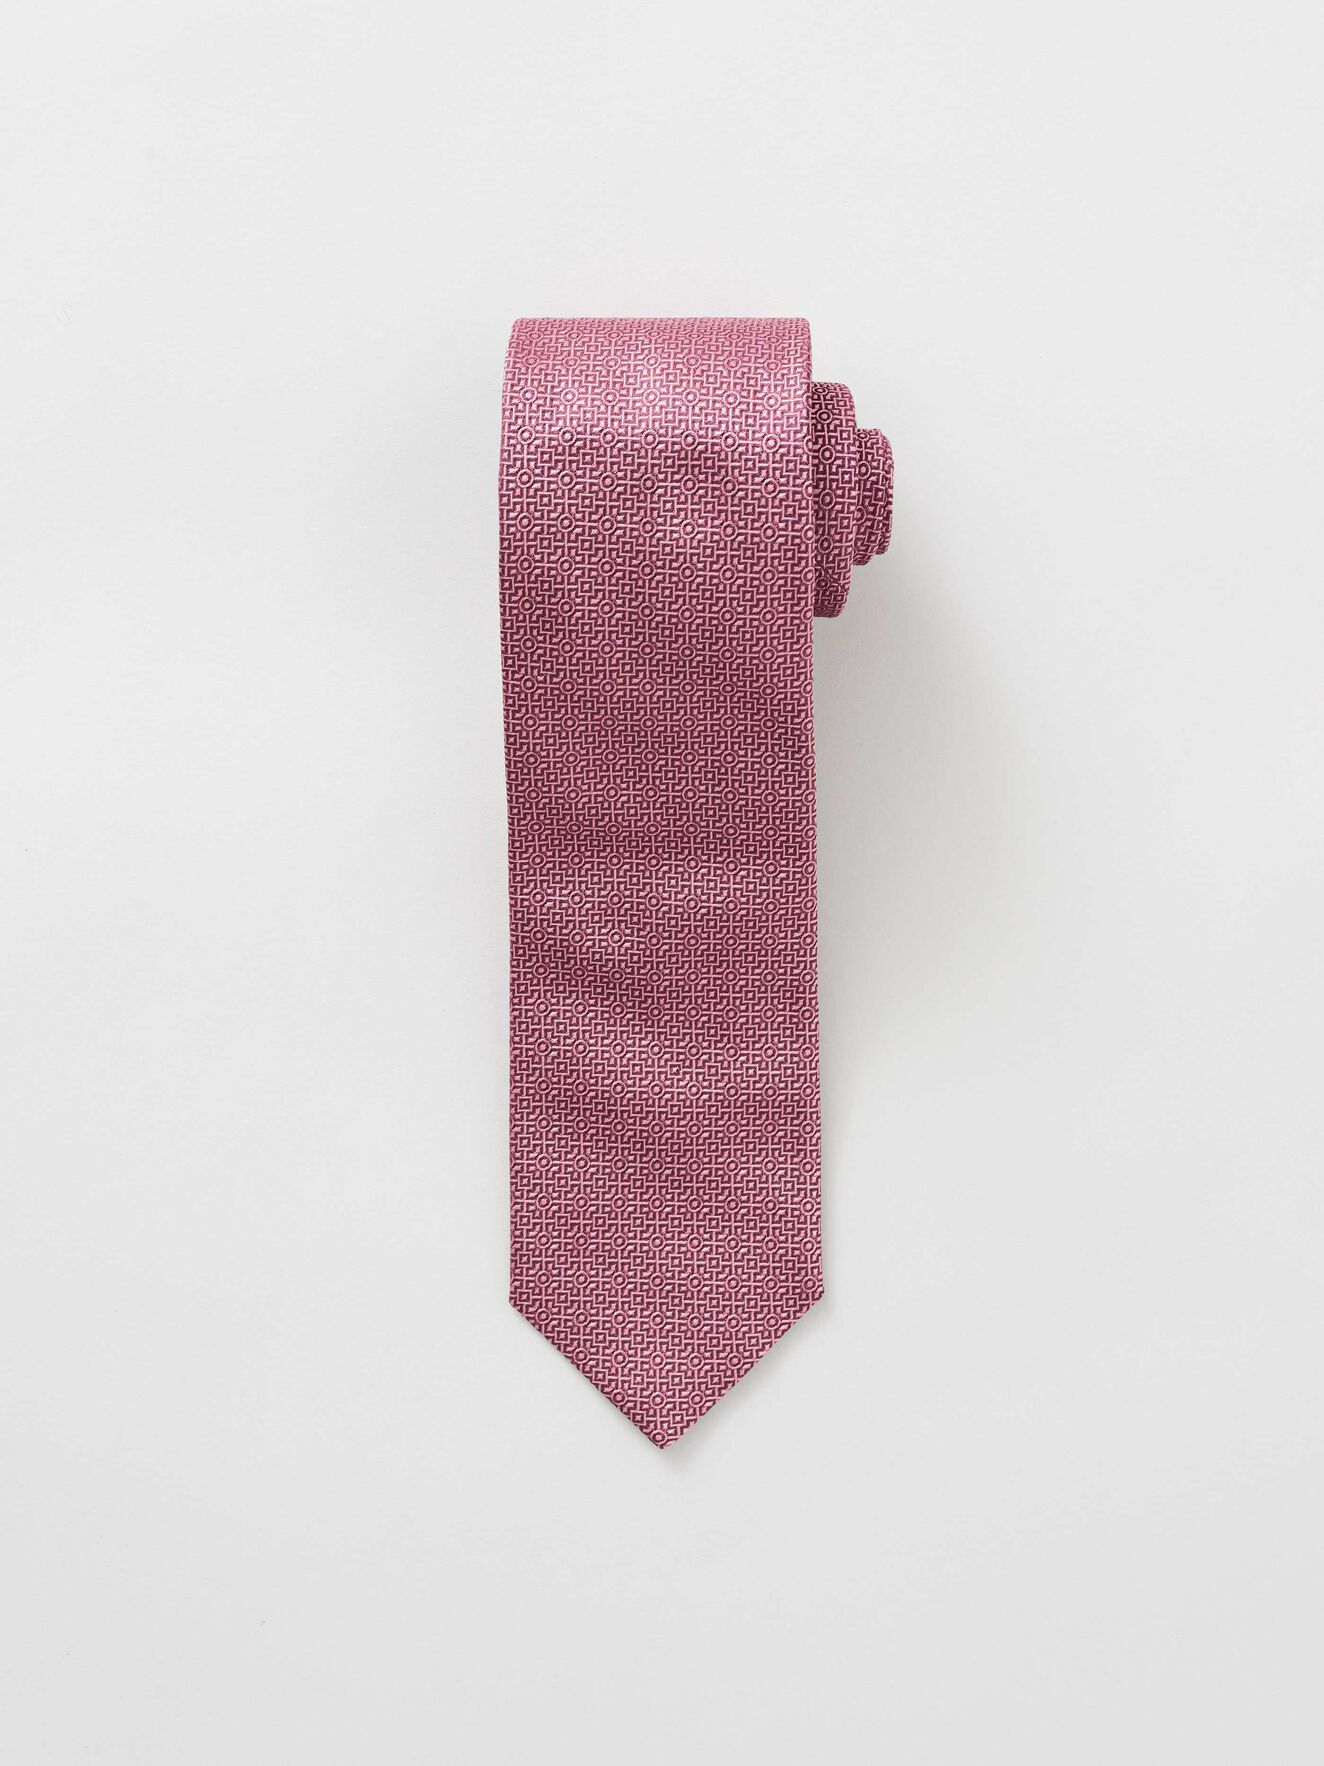 564a0b4a4260 Ties & Bow ties - Tiger of Sweden Official Online Shop